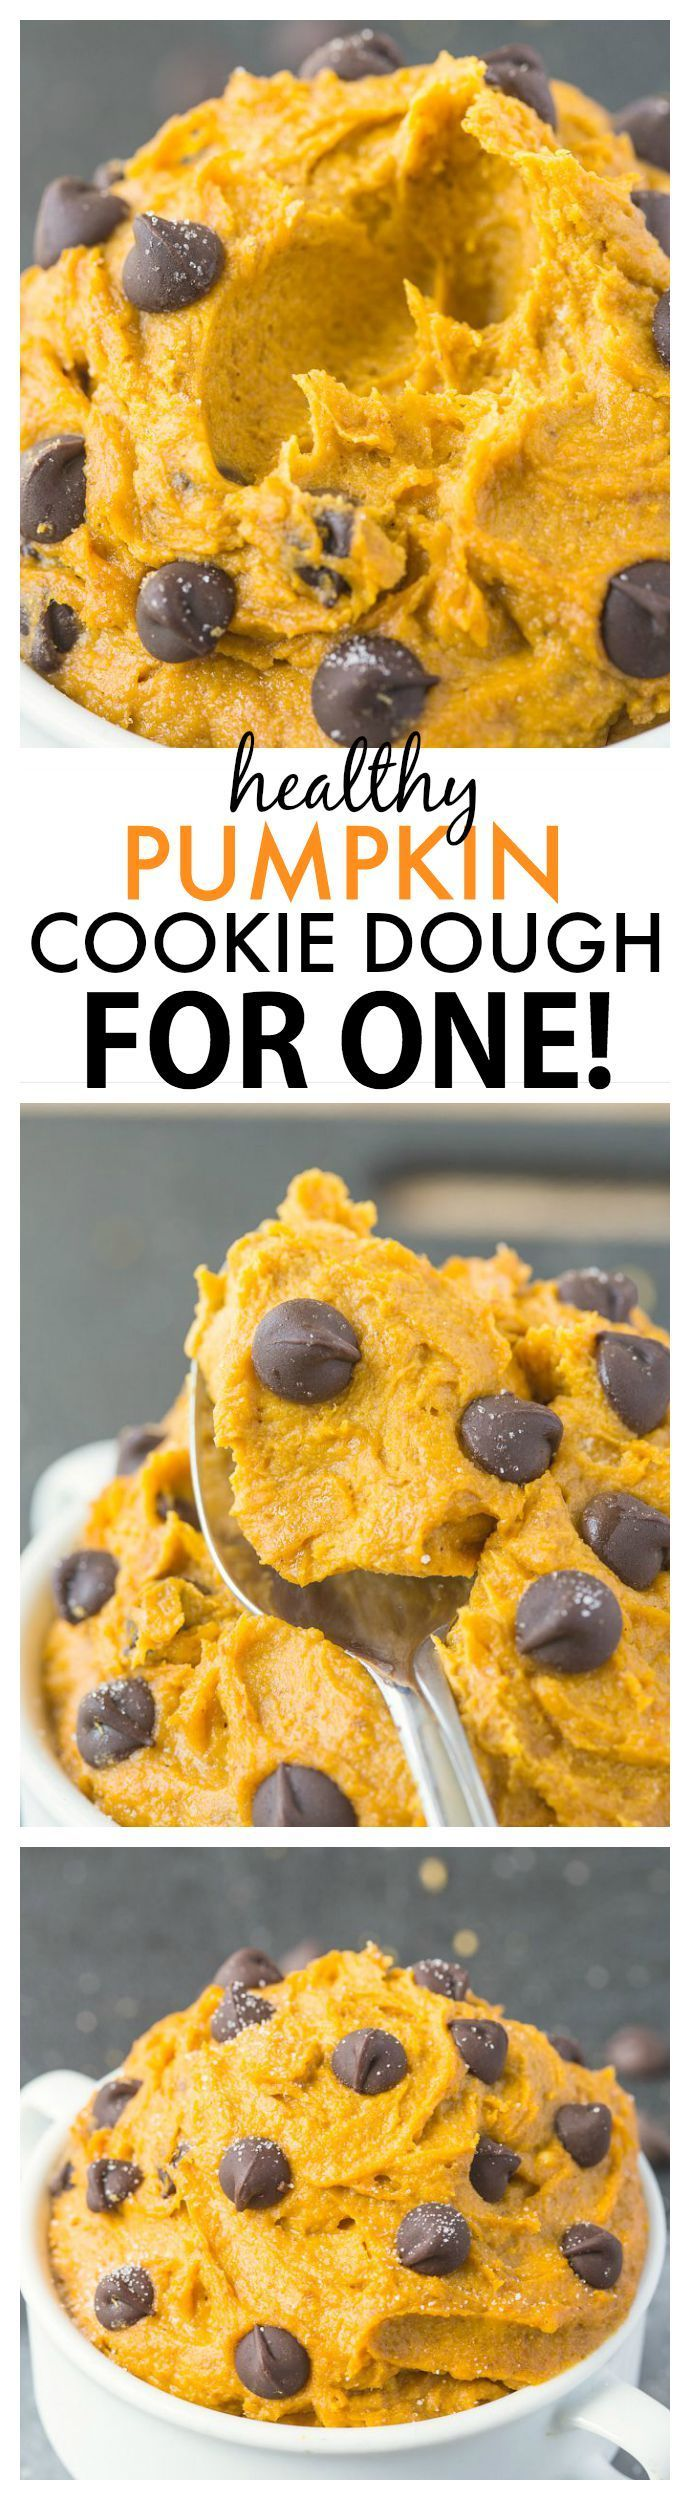 Healthy Pumpkin Cookie Dough for ONE- You'd never believe this creamy, texture perfect treat is packed full of fiber, protein and VERY low in sugar- It takes less than five minutes to whip up! {vegan, gluten-free, paleo option}